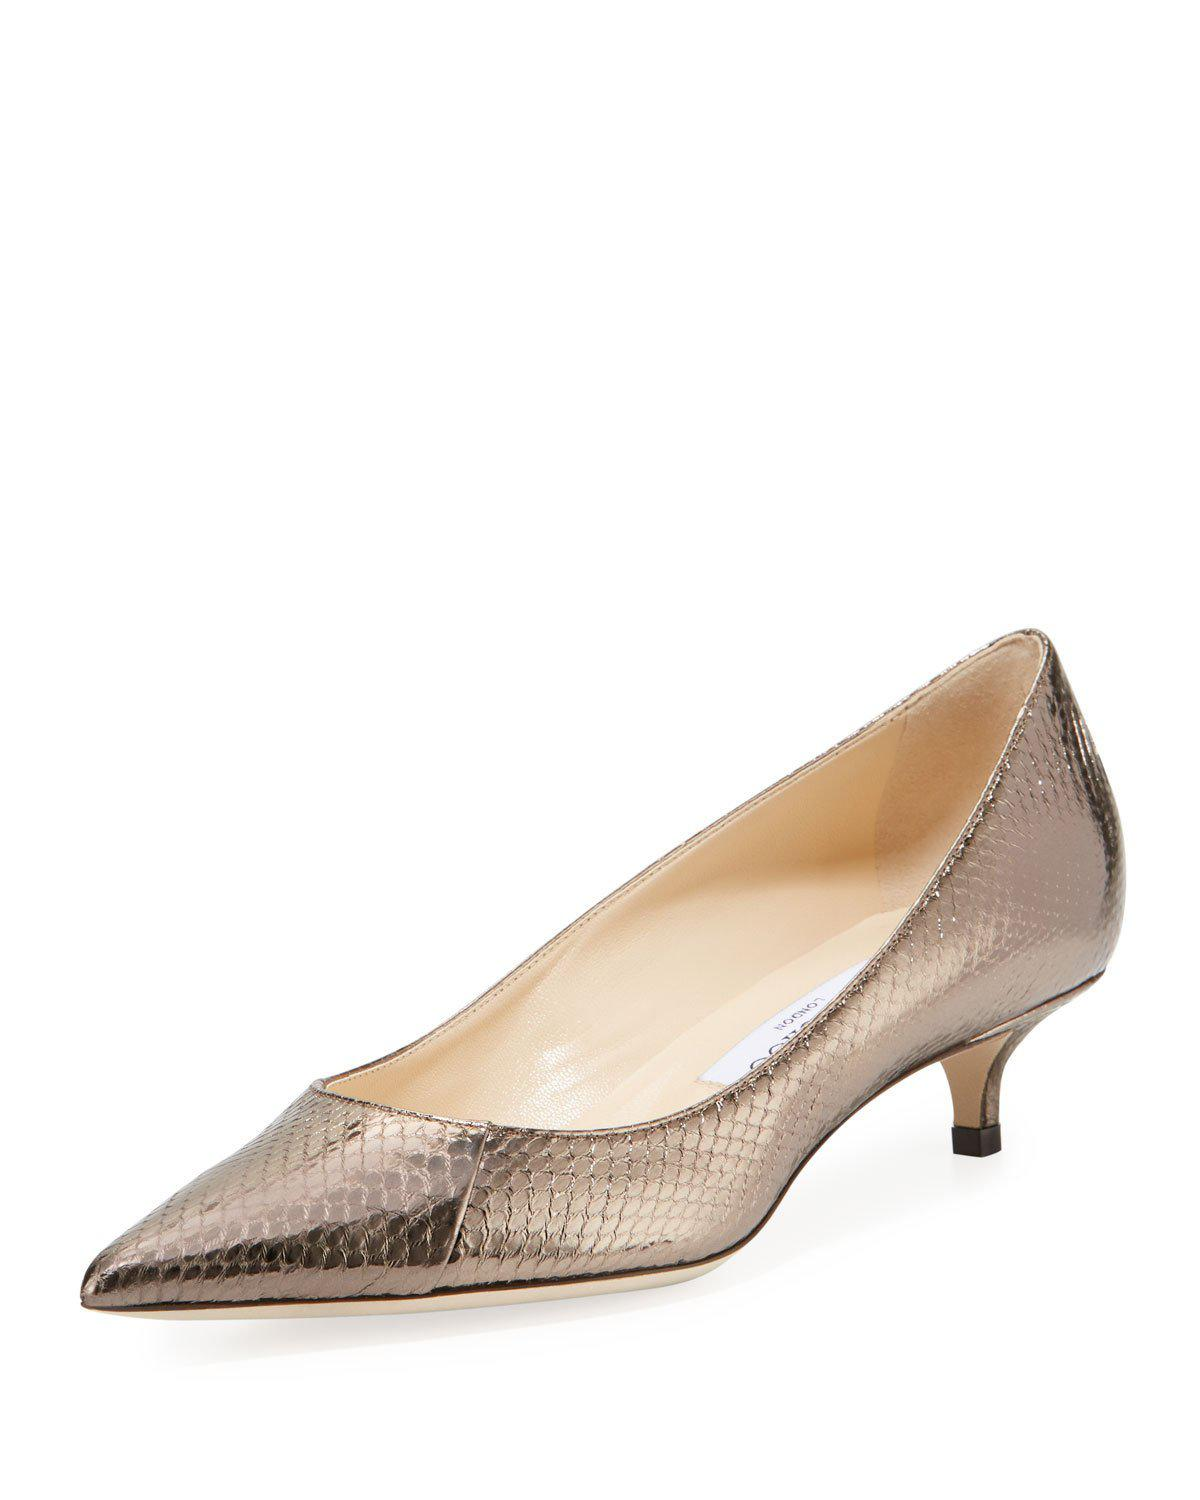 Jimmy Choo Amelia Snakeskin Kitten Pumps In Pewter